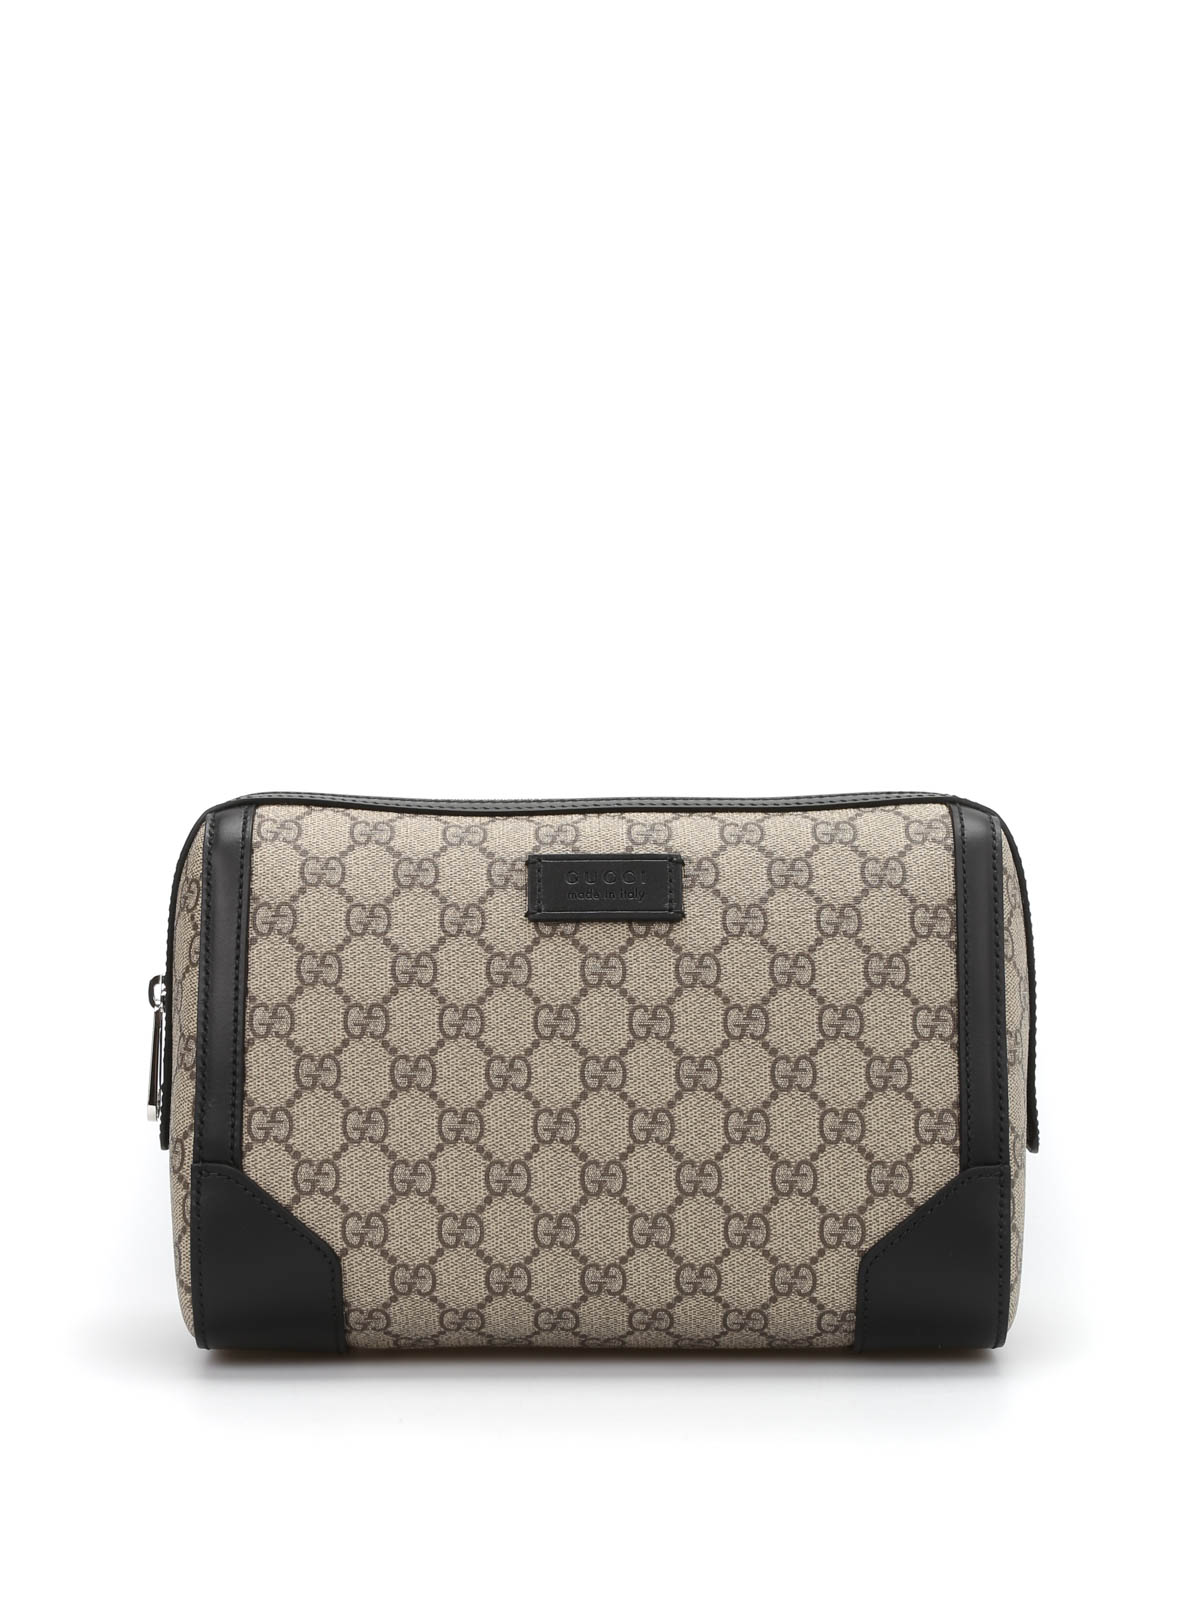 Gucci Cases Covers Gg Supreme Toiletry Case